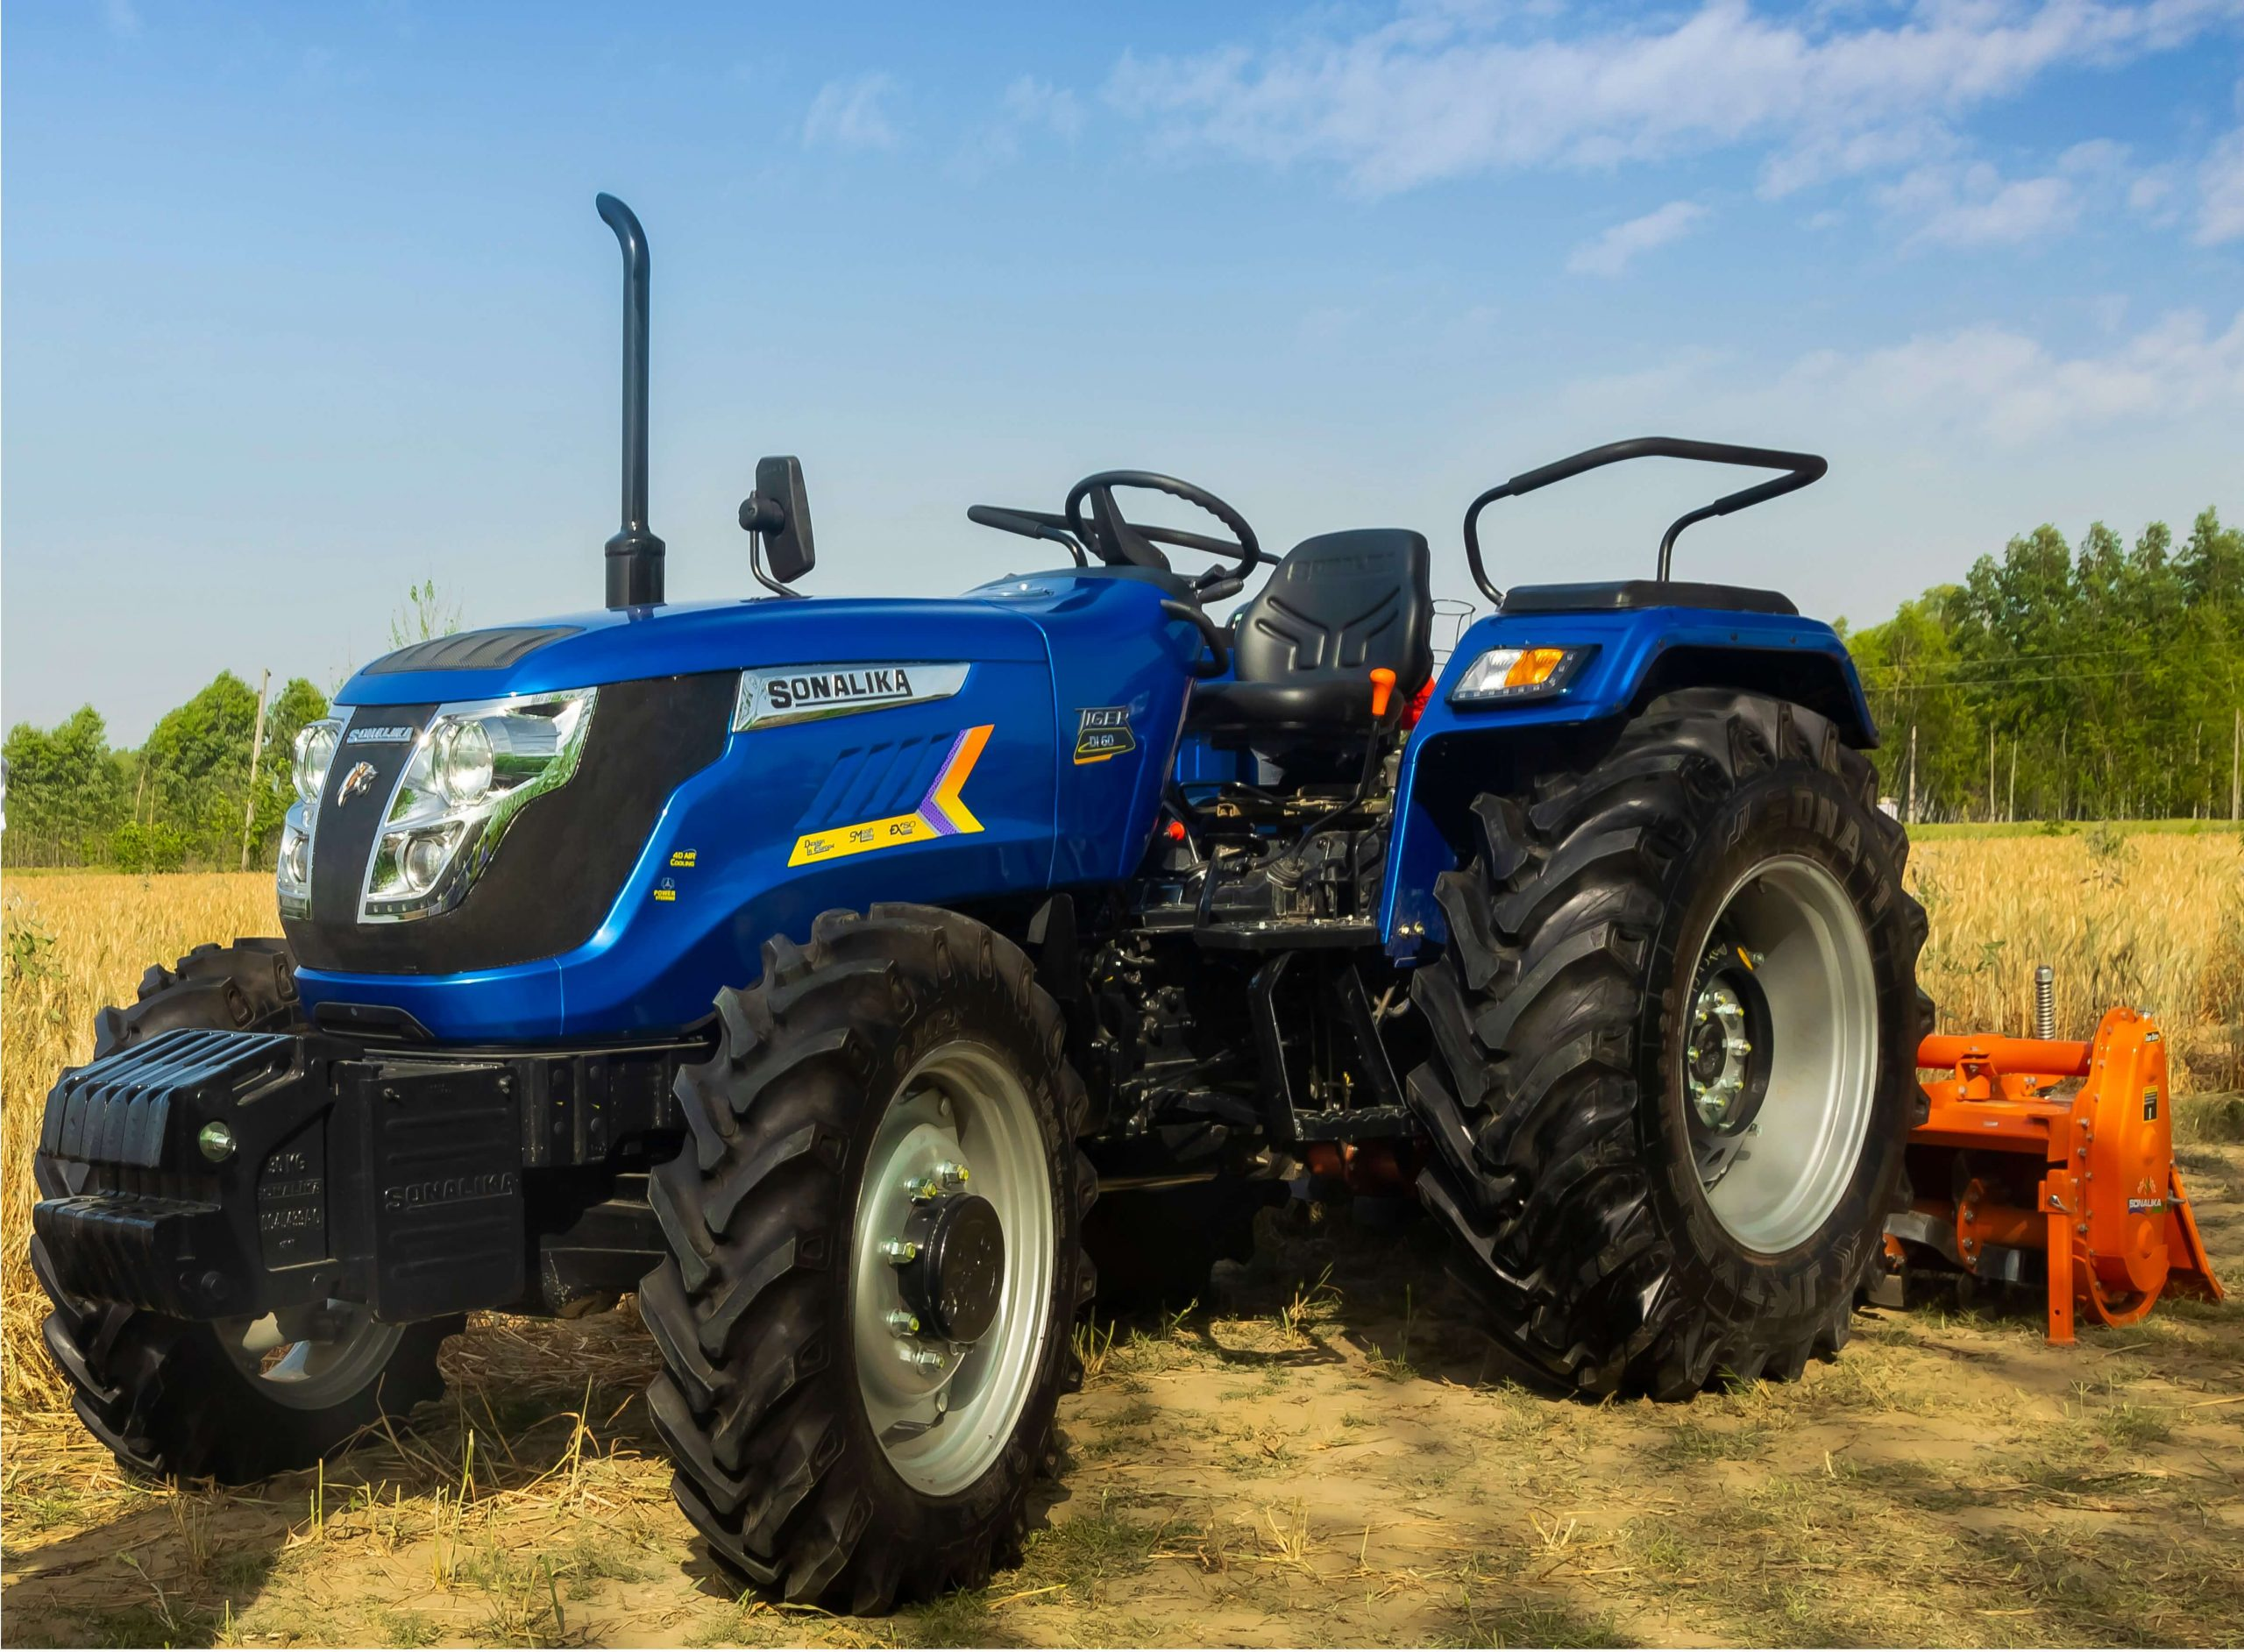 Sonalika Records Highest Domestic growth in Industry at 41.6%; Surpasses industry growth (est. 26.7%) to Record Highest Ever overall Annual Sales Volume of 1,39,526 tractors in FY'21